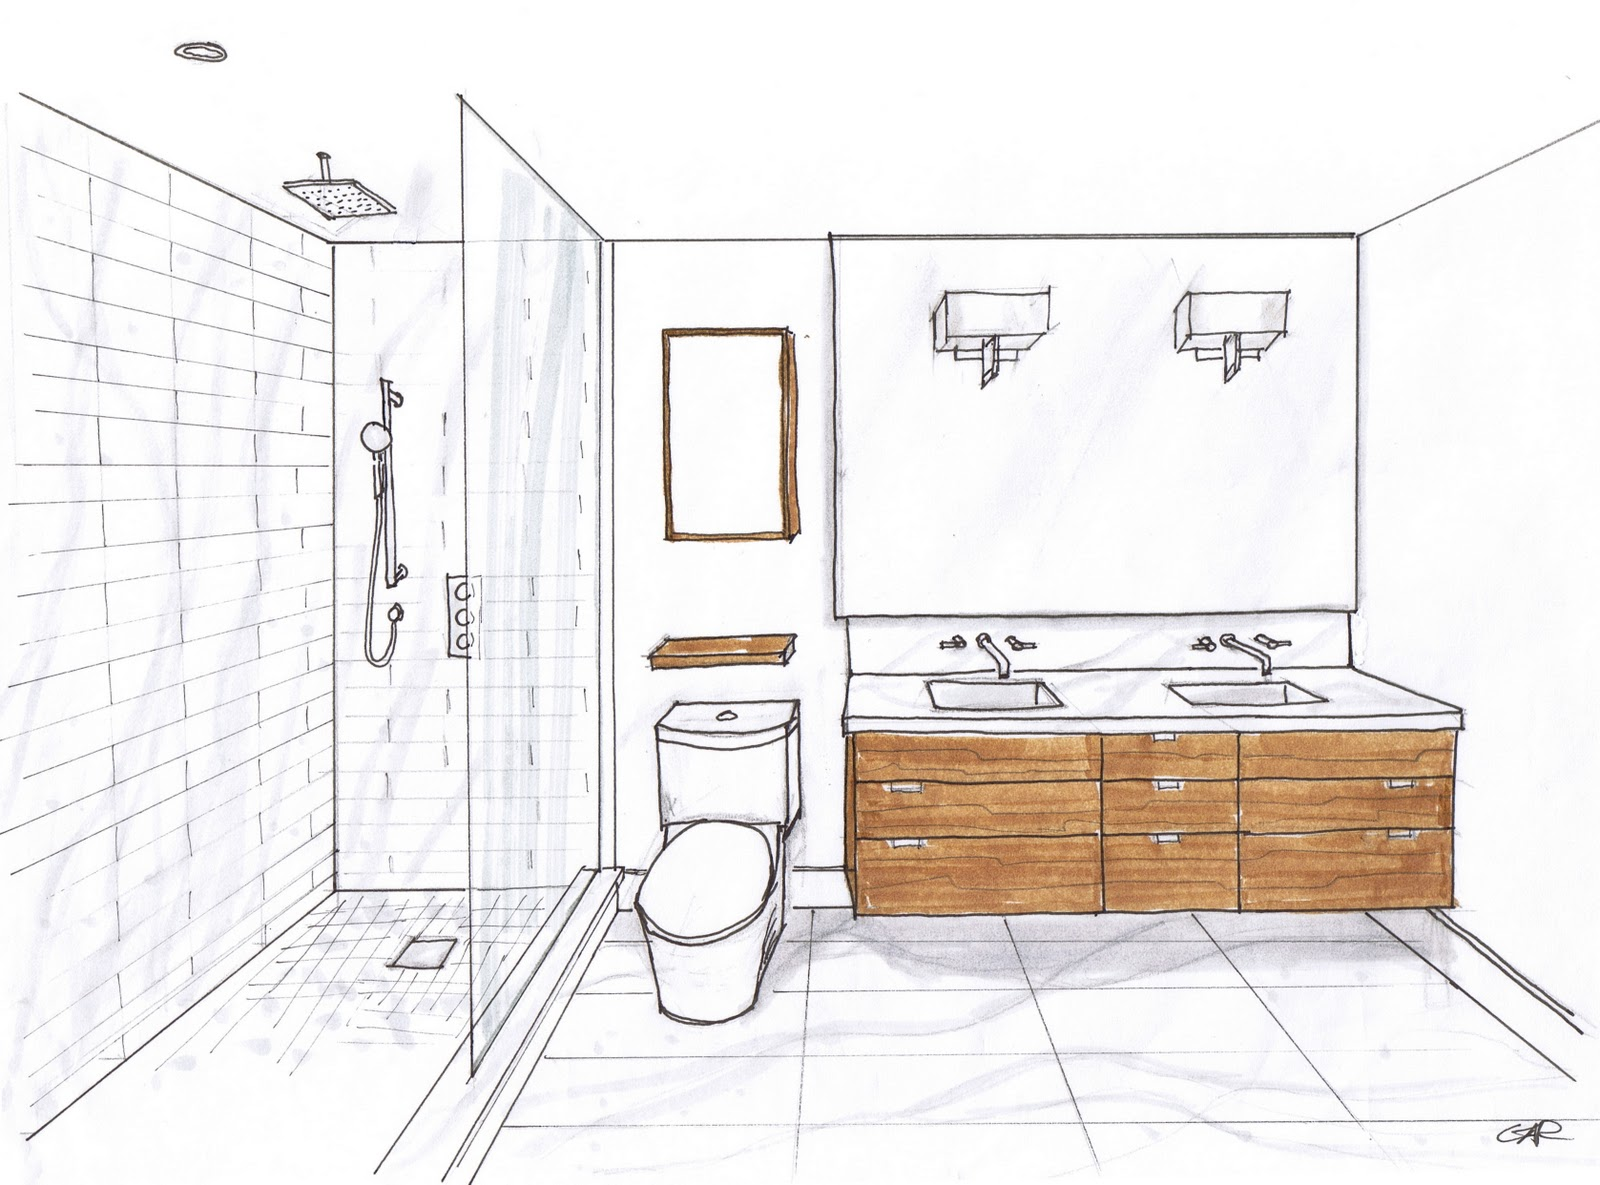 Creed 70 39 S Bungalow Bathroom Designs